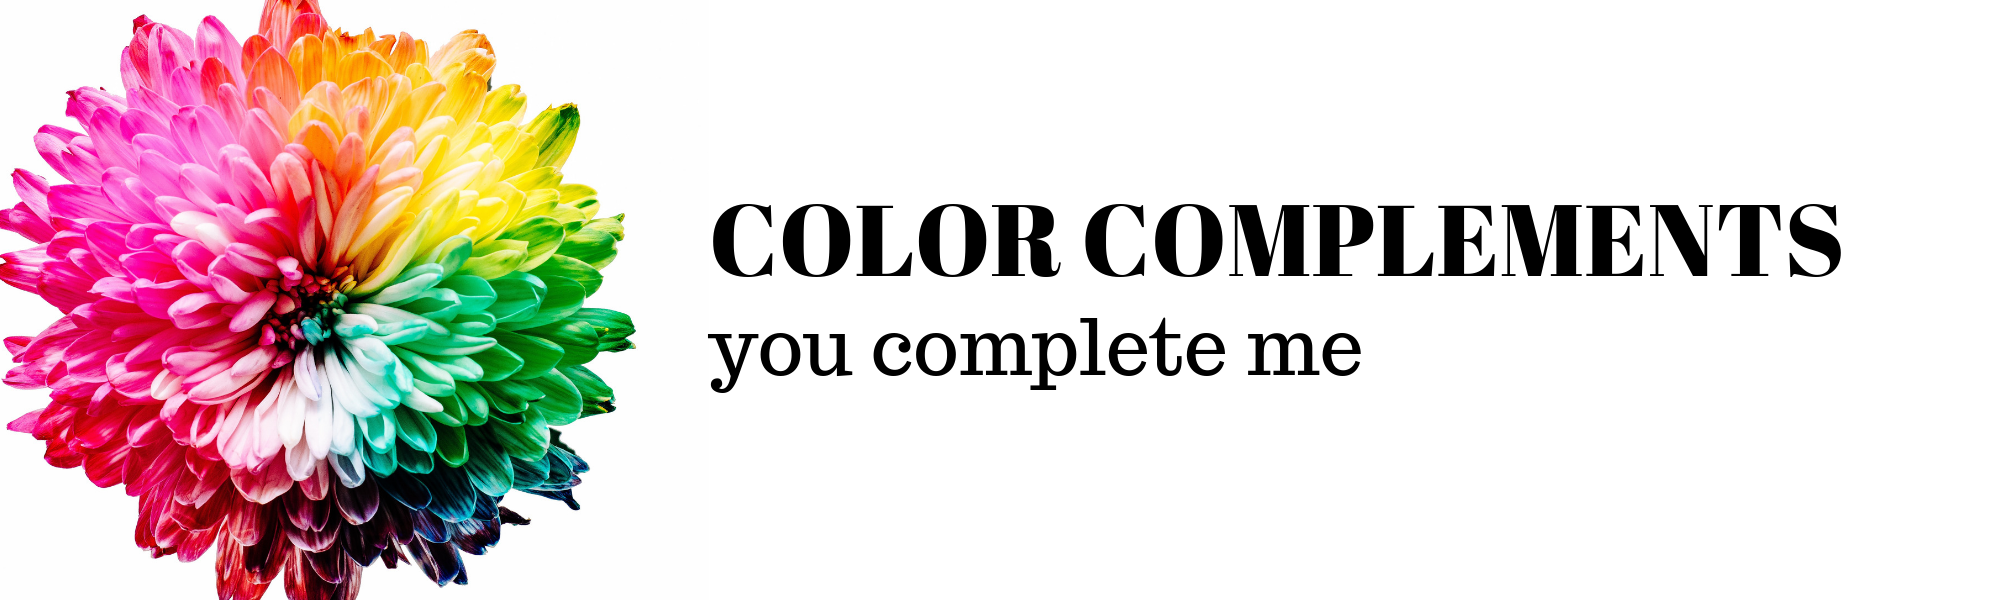 Color Completements banner